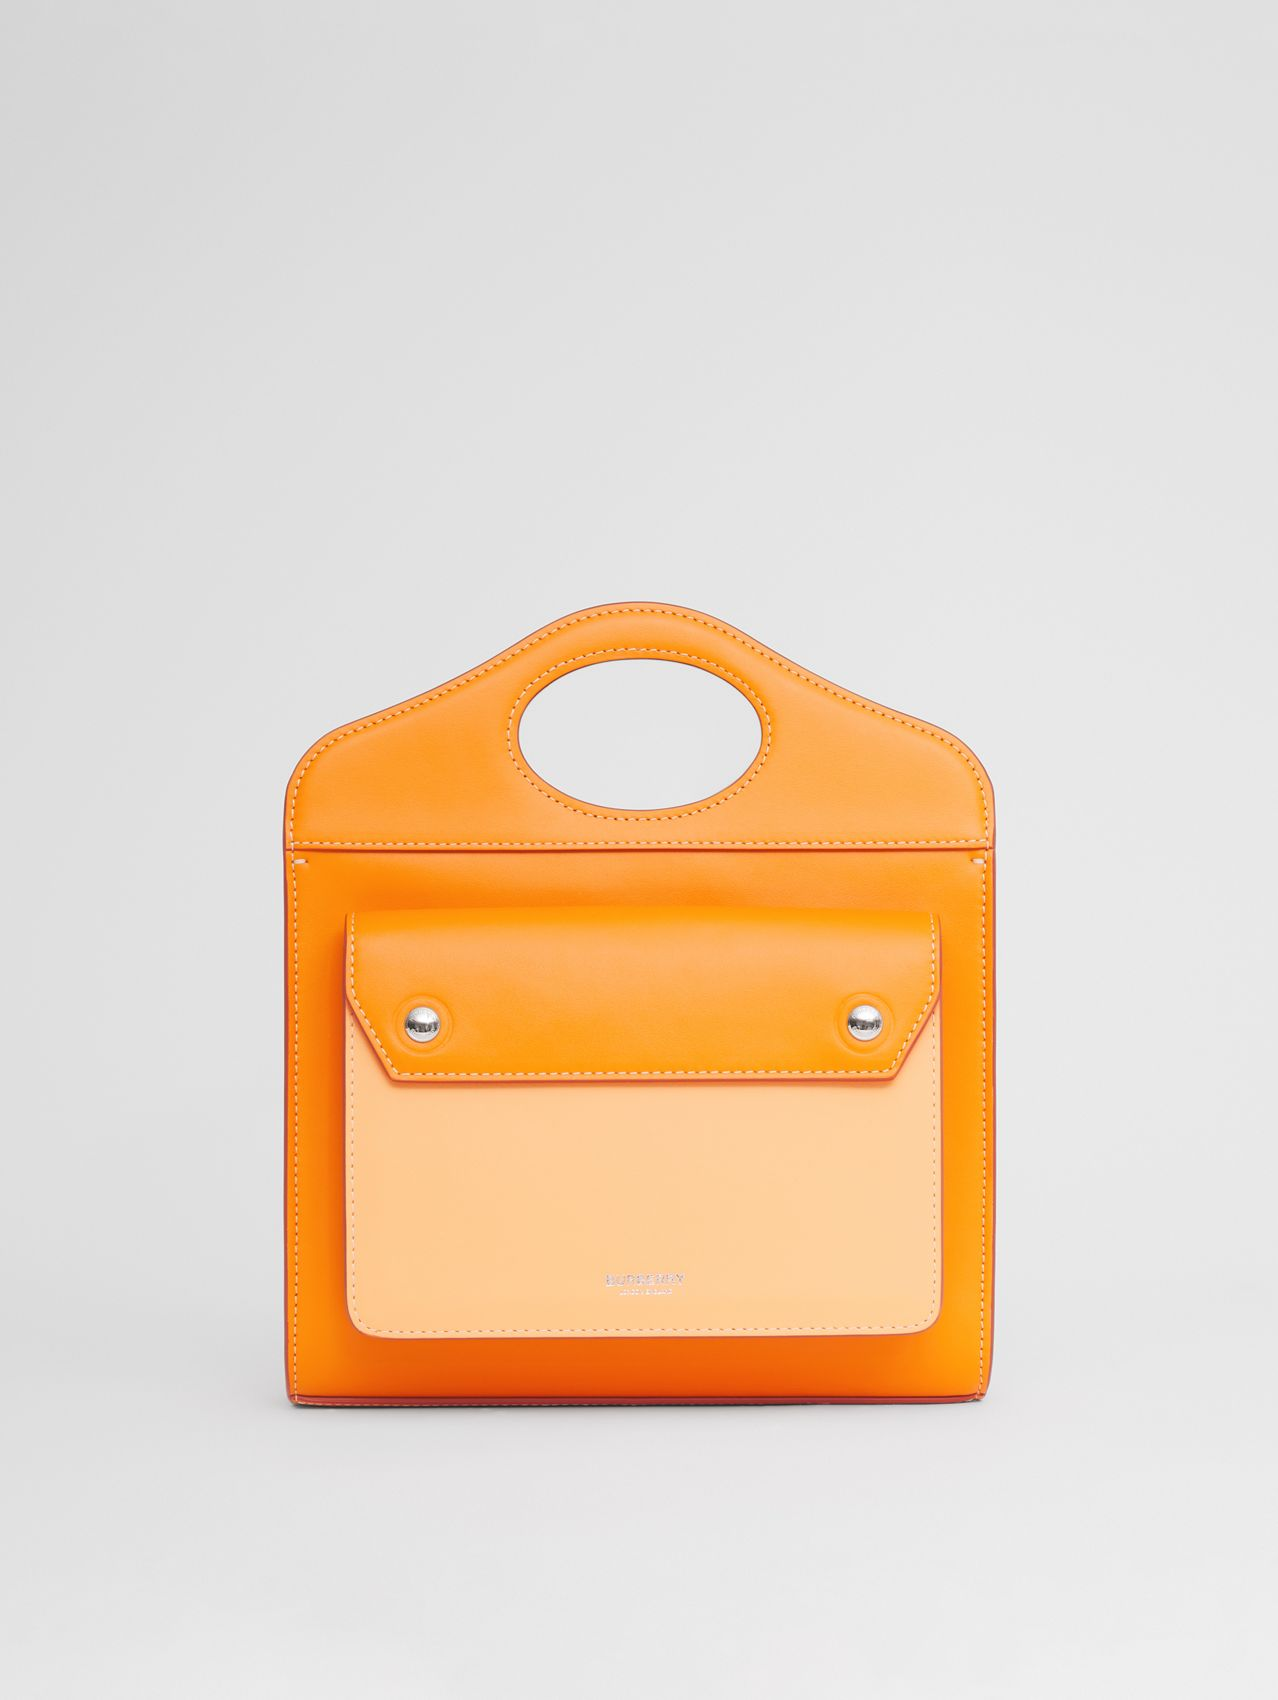 Mini sac Pocket en cuir bicolore (Orange Intense/orange Ambre)